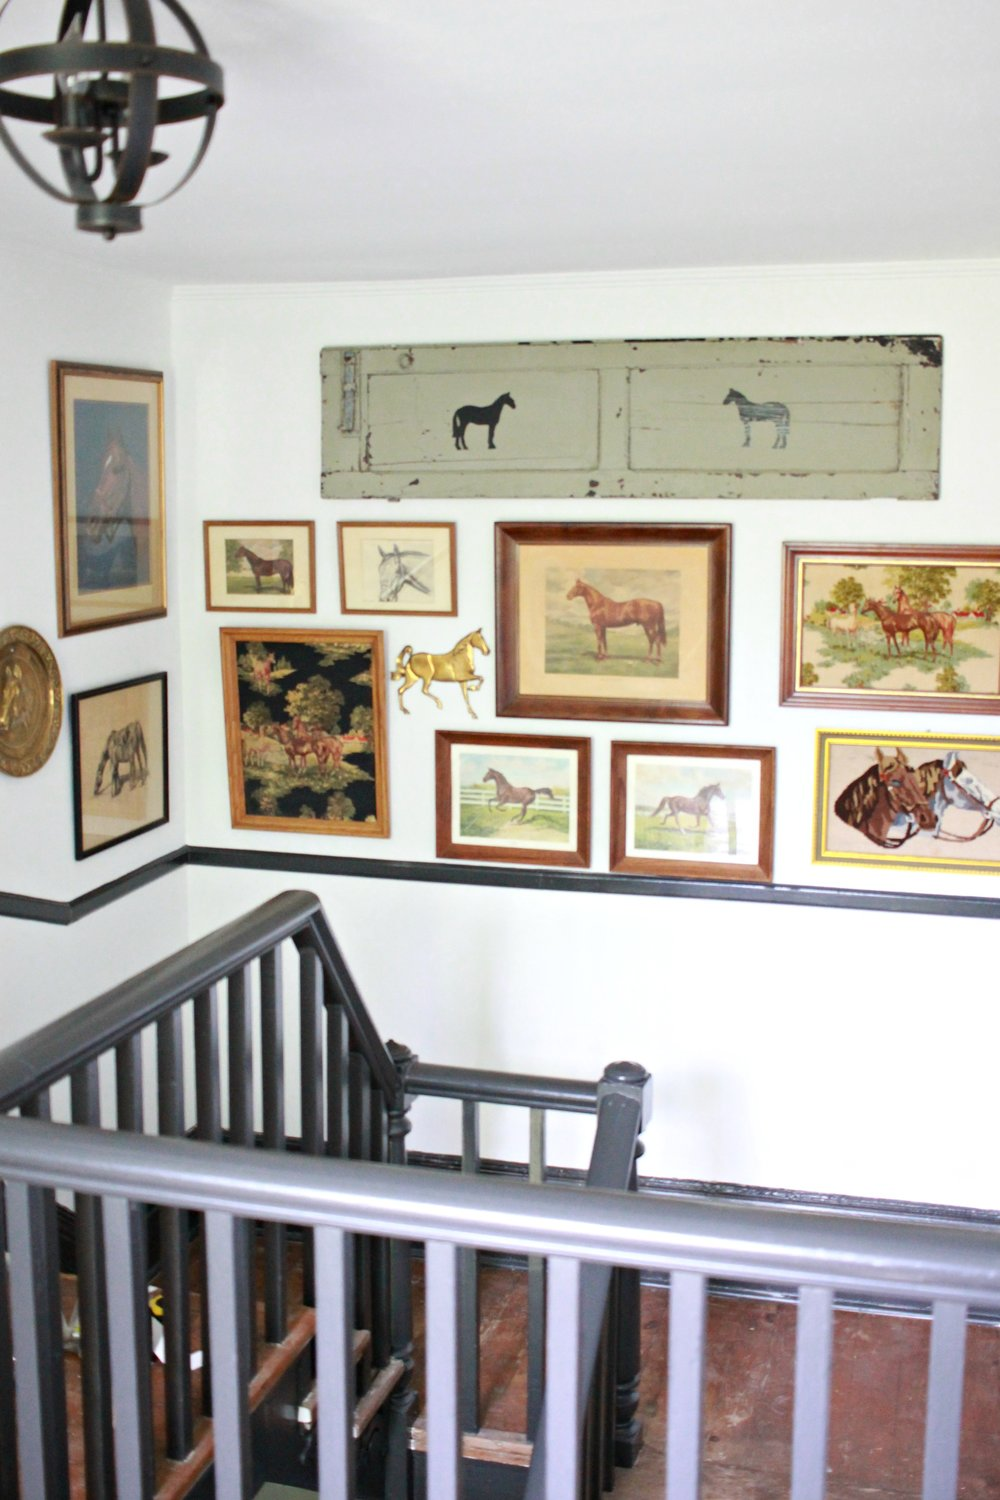 Vintage equestrian gallery wall in my home's entryway